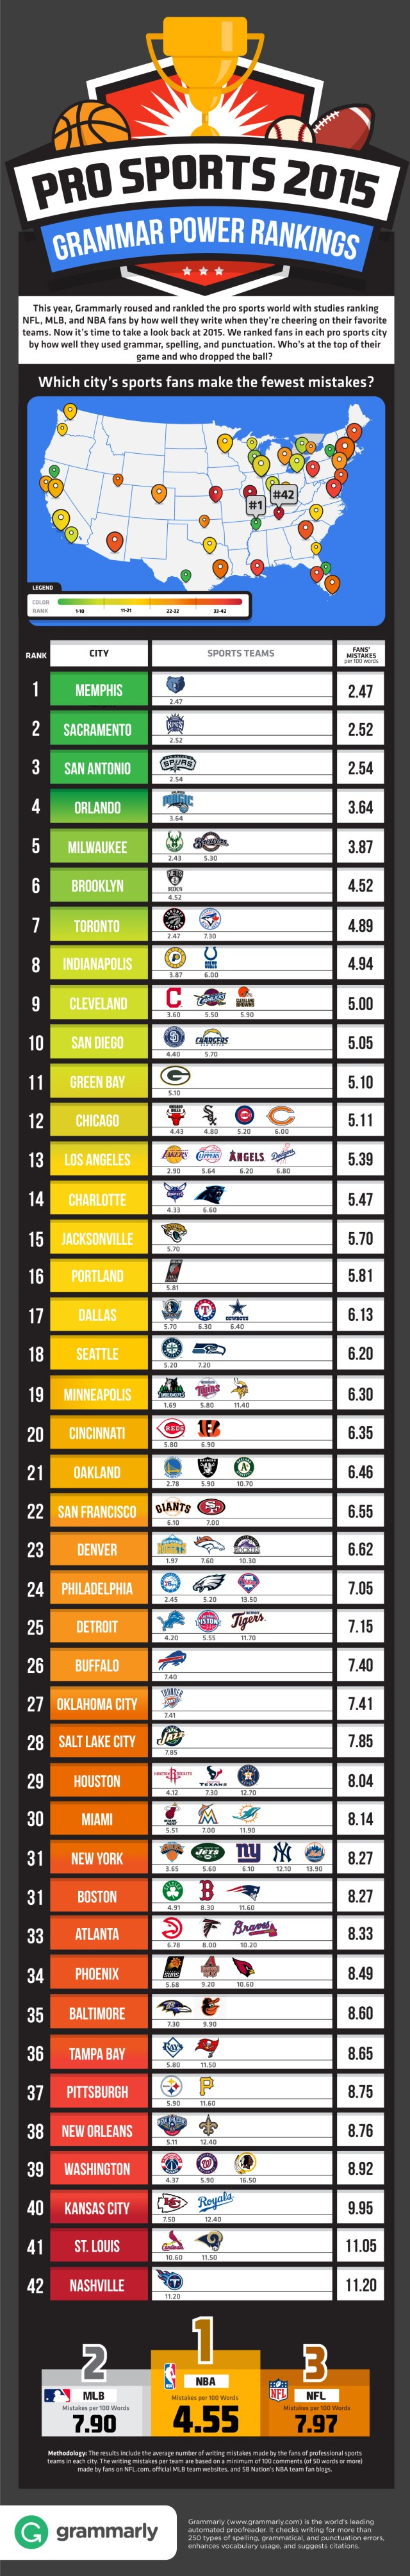 Sports Fan Cities Grammar Ranking Infographic